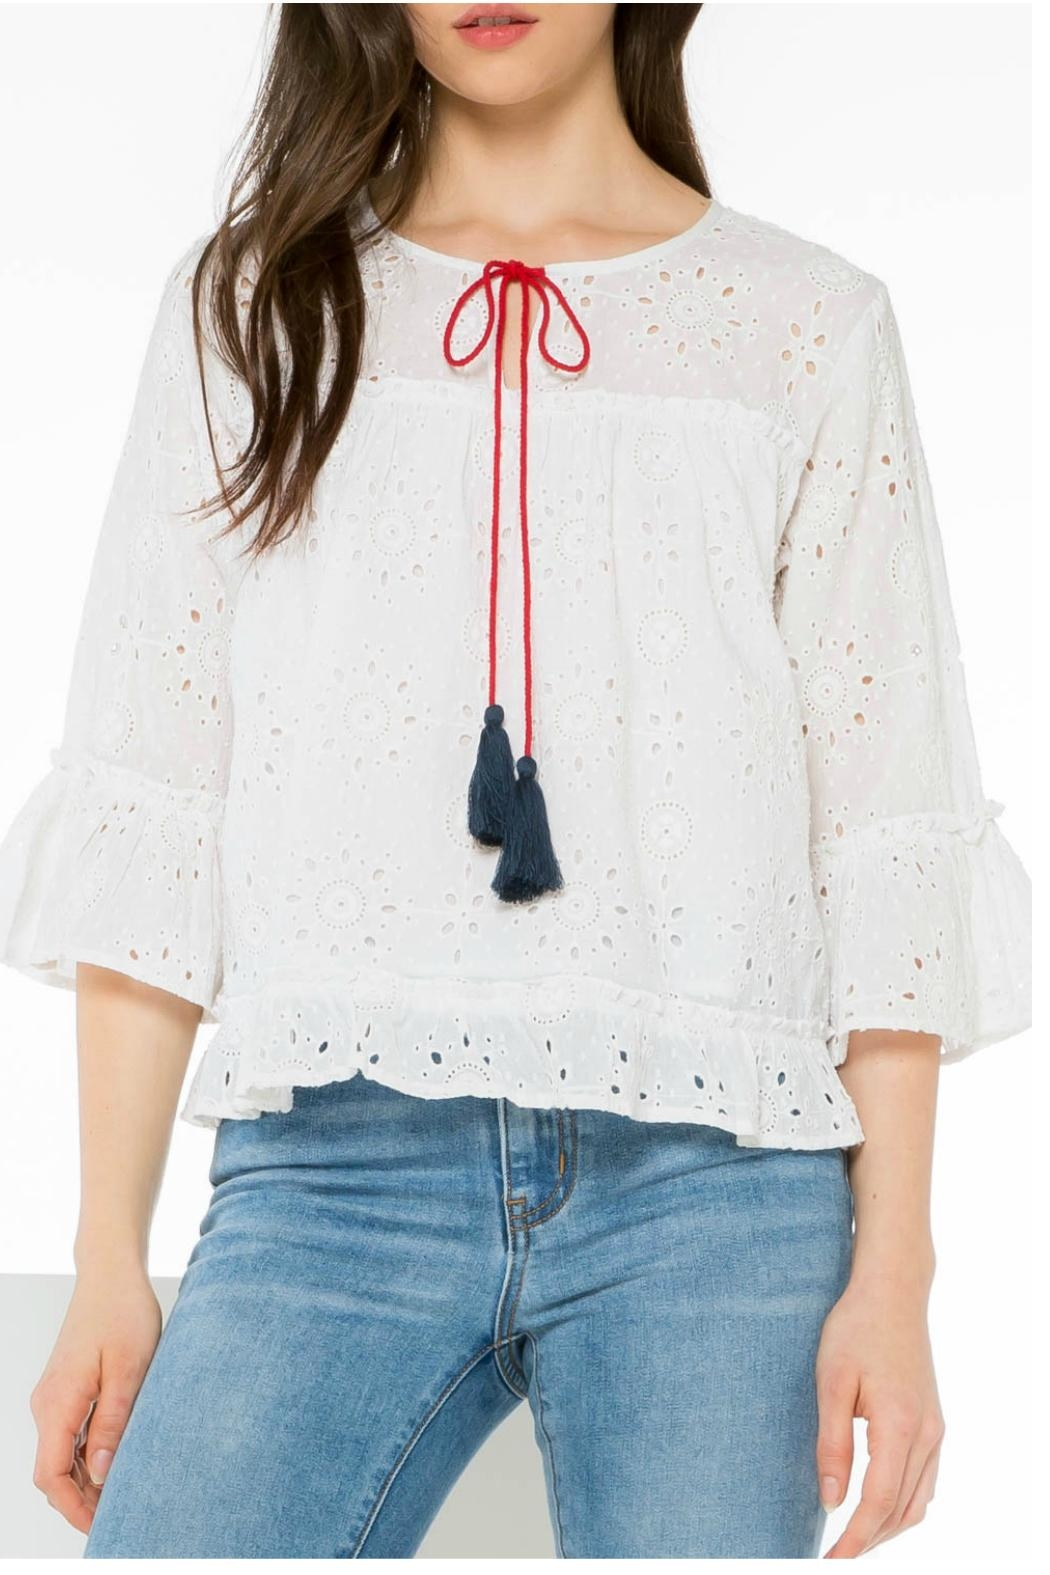 THML Clothing Eyelet Pullover Top - Front Full Image